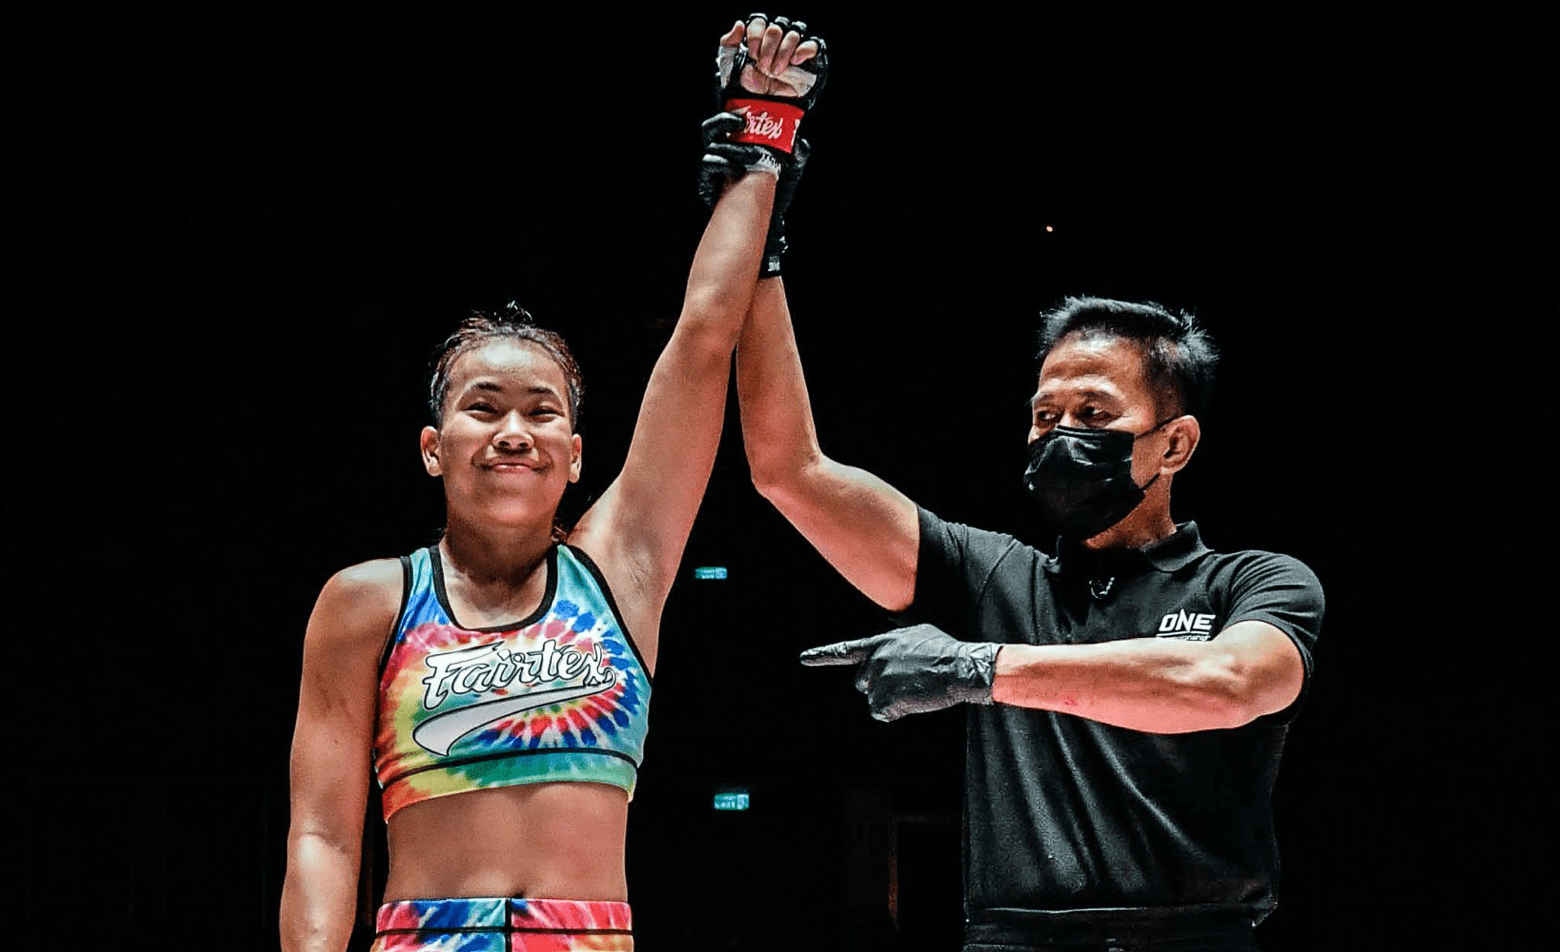 Wondergirl On Latest Win, Her Sister's Debut, Stamp & Future Opponents